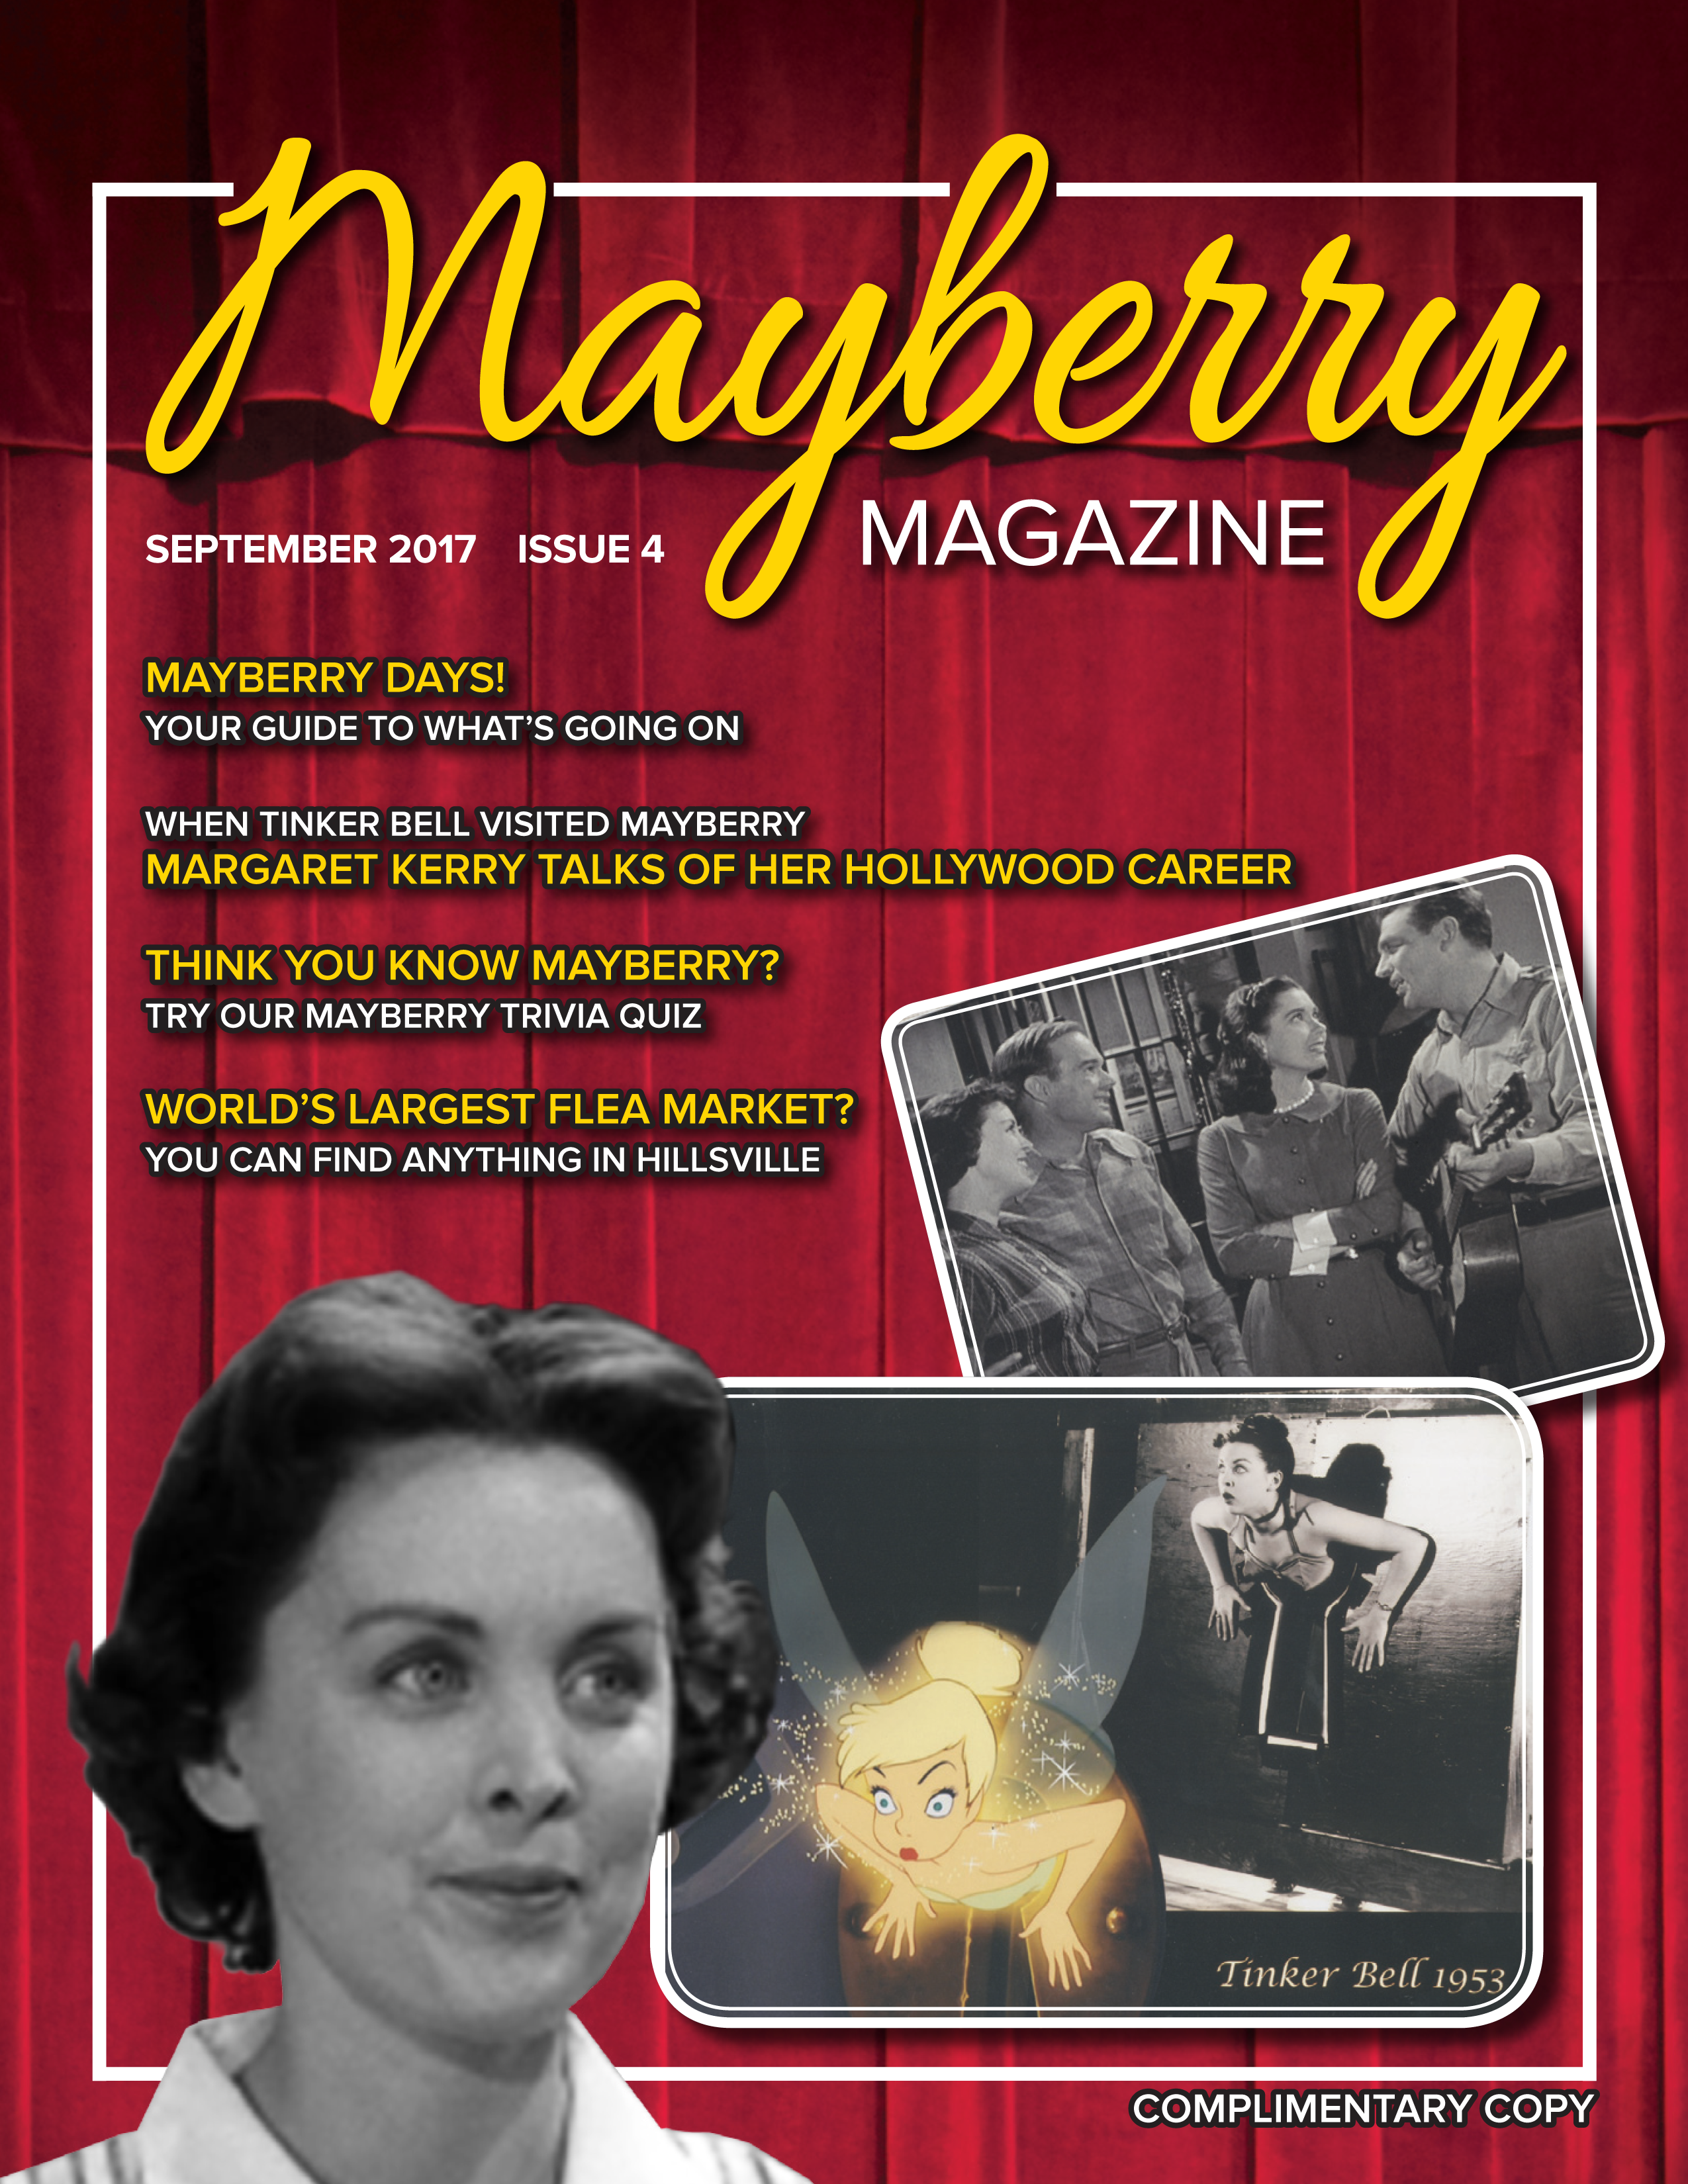 September 2017 Mayberry Magazine